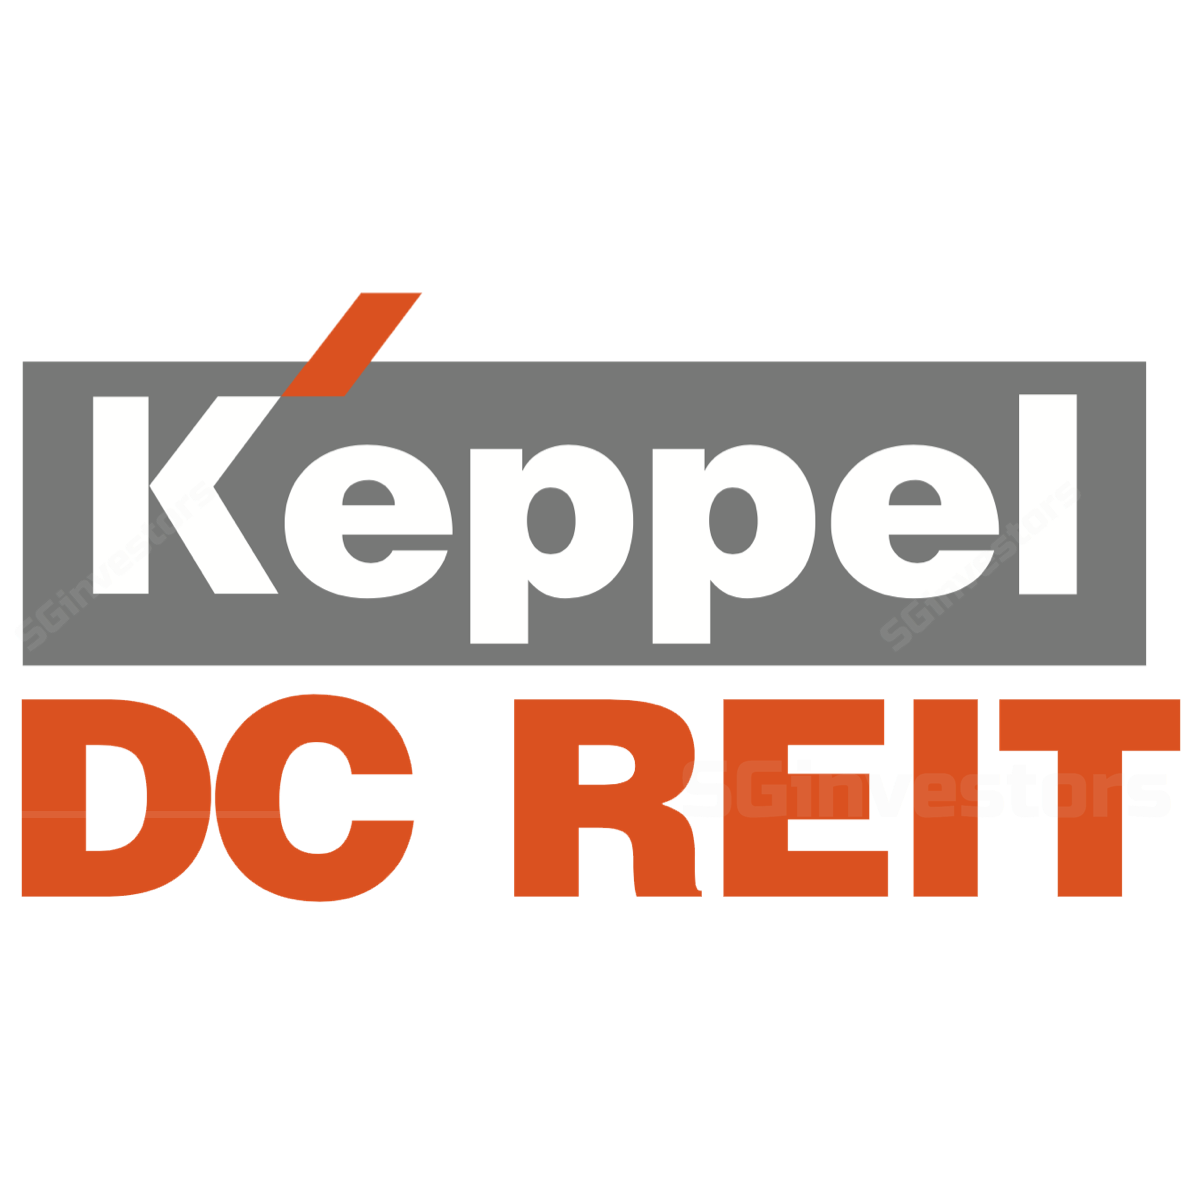 Keppel DC REIT - OCBC Investment 2017-04-03: Robust growth potential